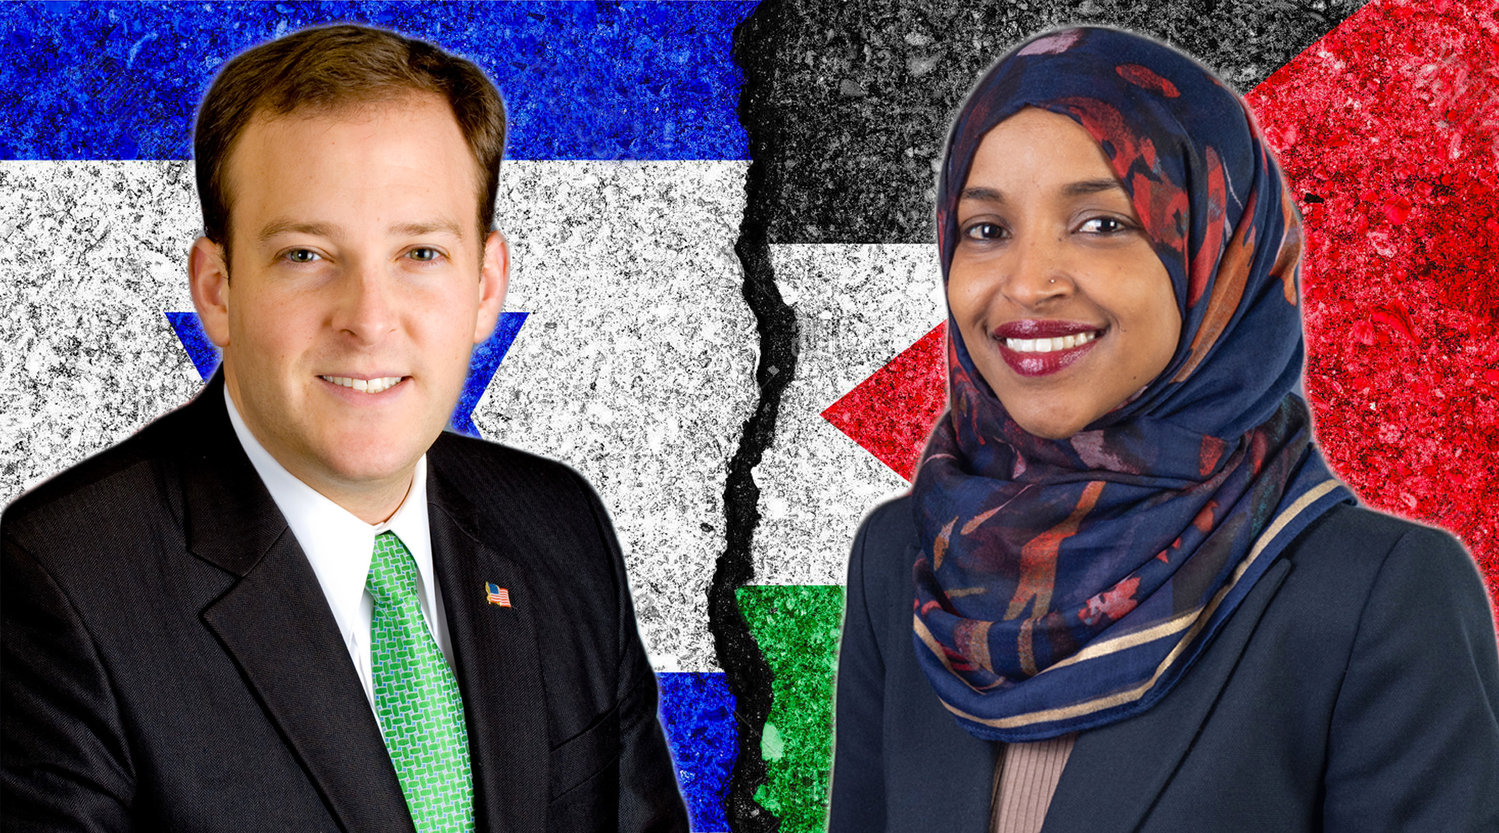 Reps. Lee Zeldin and Ilhan Omar have been feuding on Twitter over Omar's support of BDS.